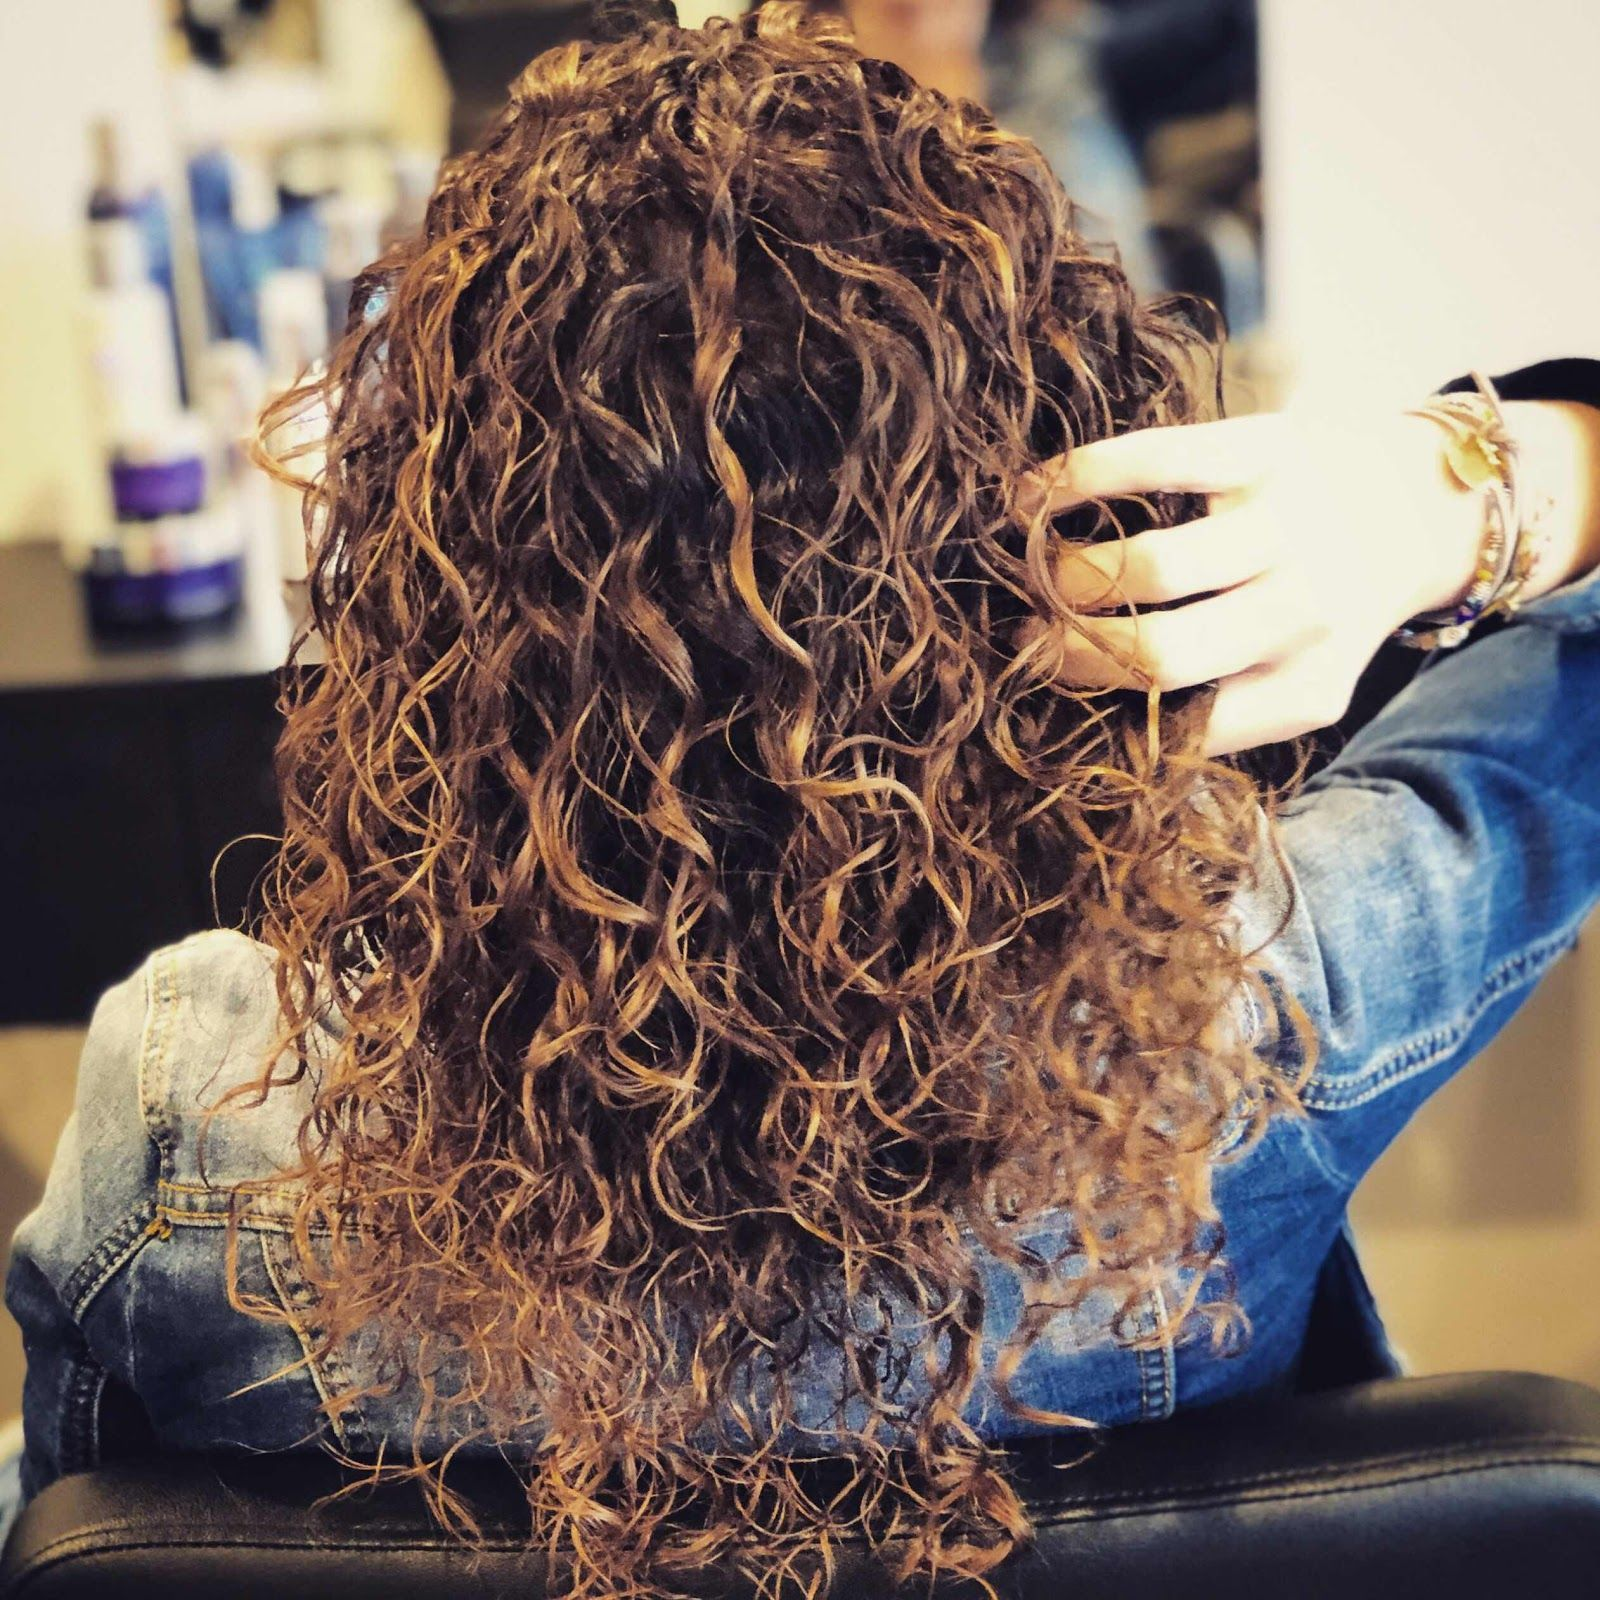 Everyday Larose 5 Hacks For Mastering Naturally Curly Hair That You Need To Try In 2020 Curly Hair Styles Naturally Curly Hair Tips Naturally Curly